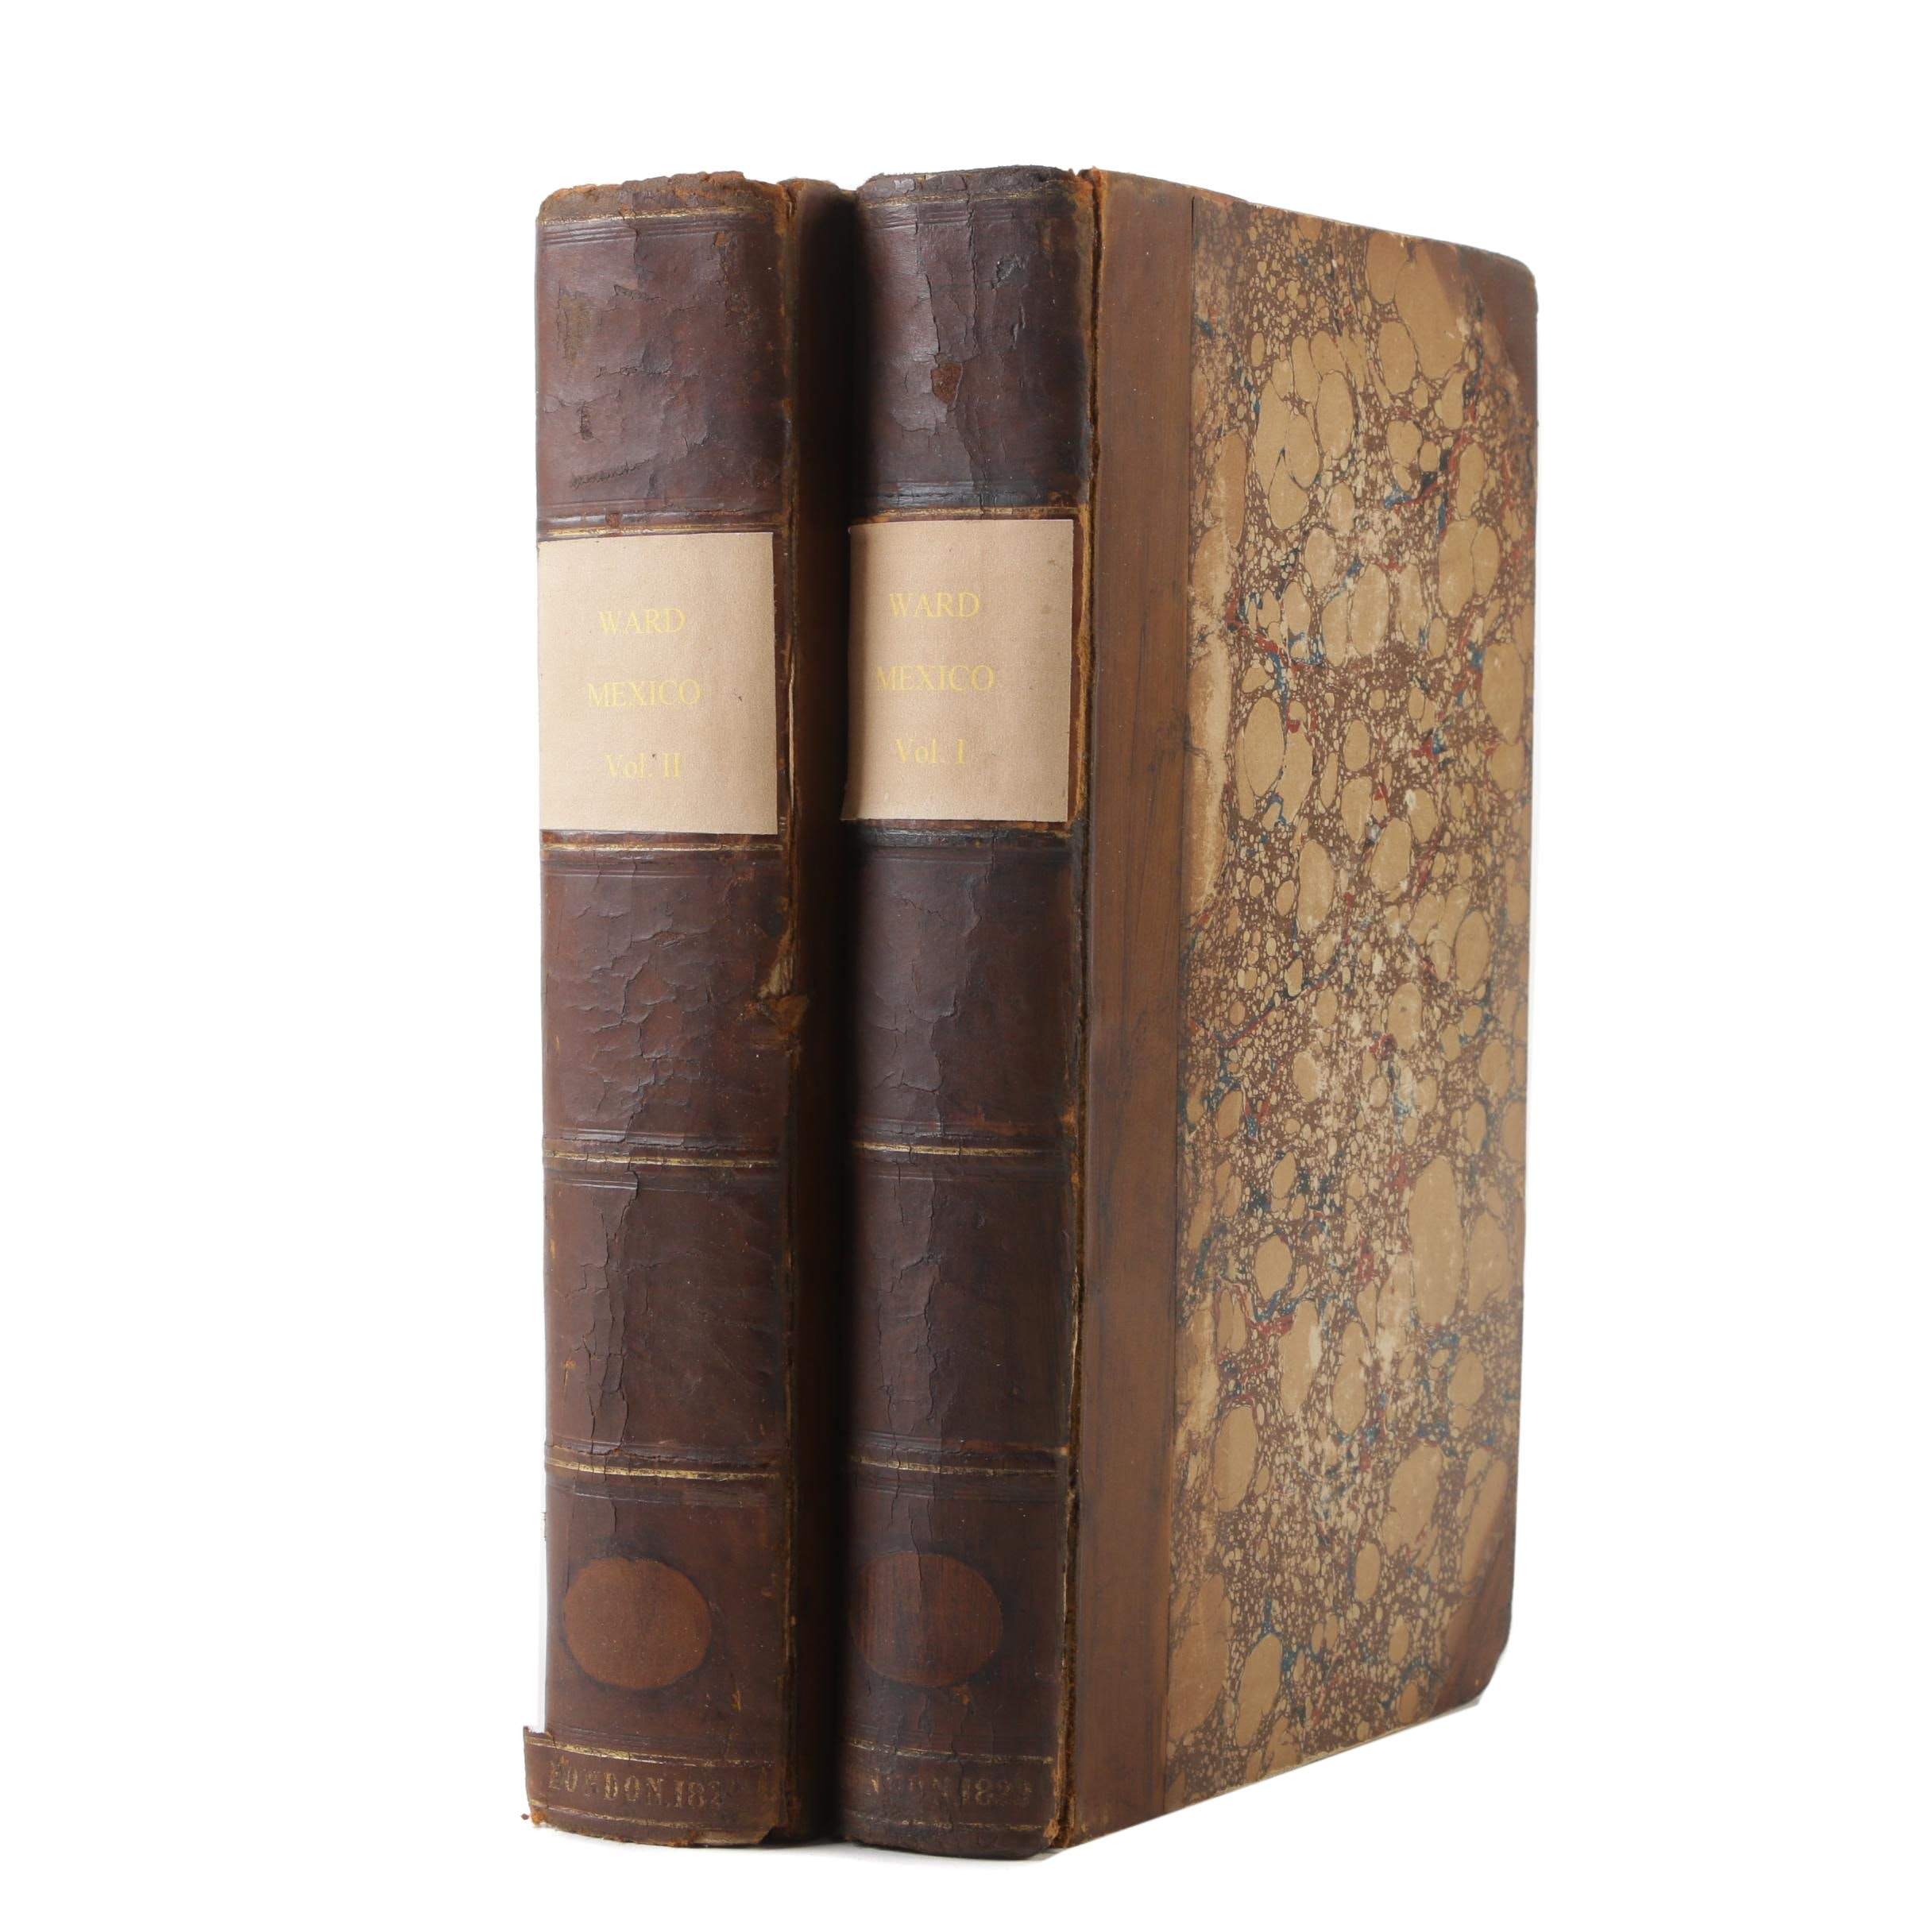 "Second Edition ""Mexico"" Volumes I and II by Henry George Ward, 1829"